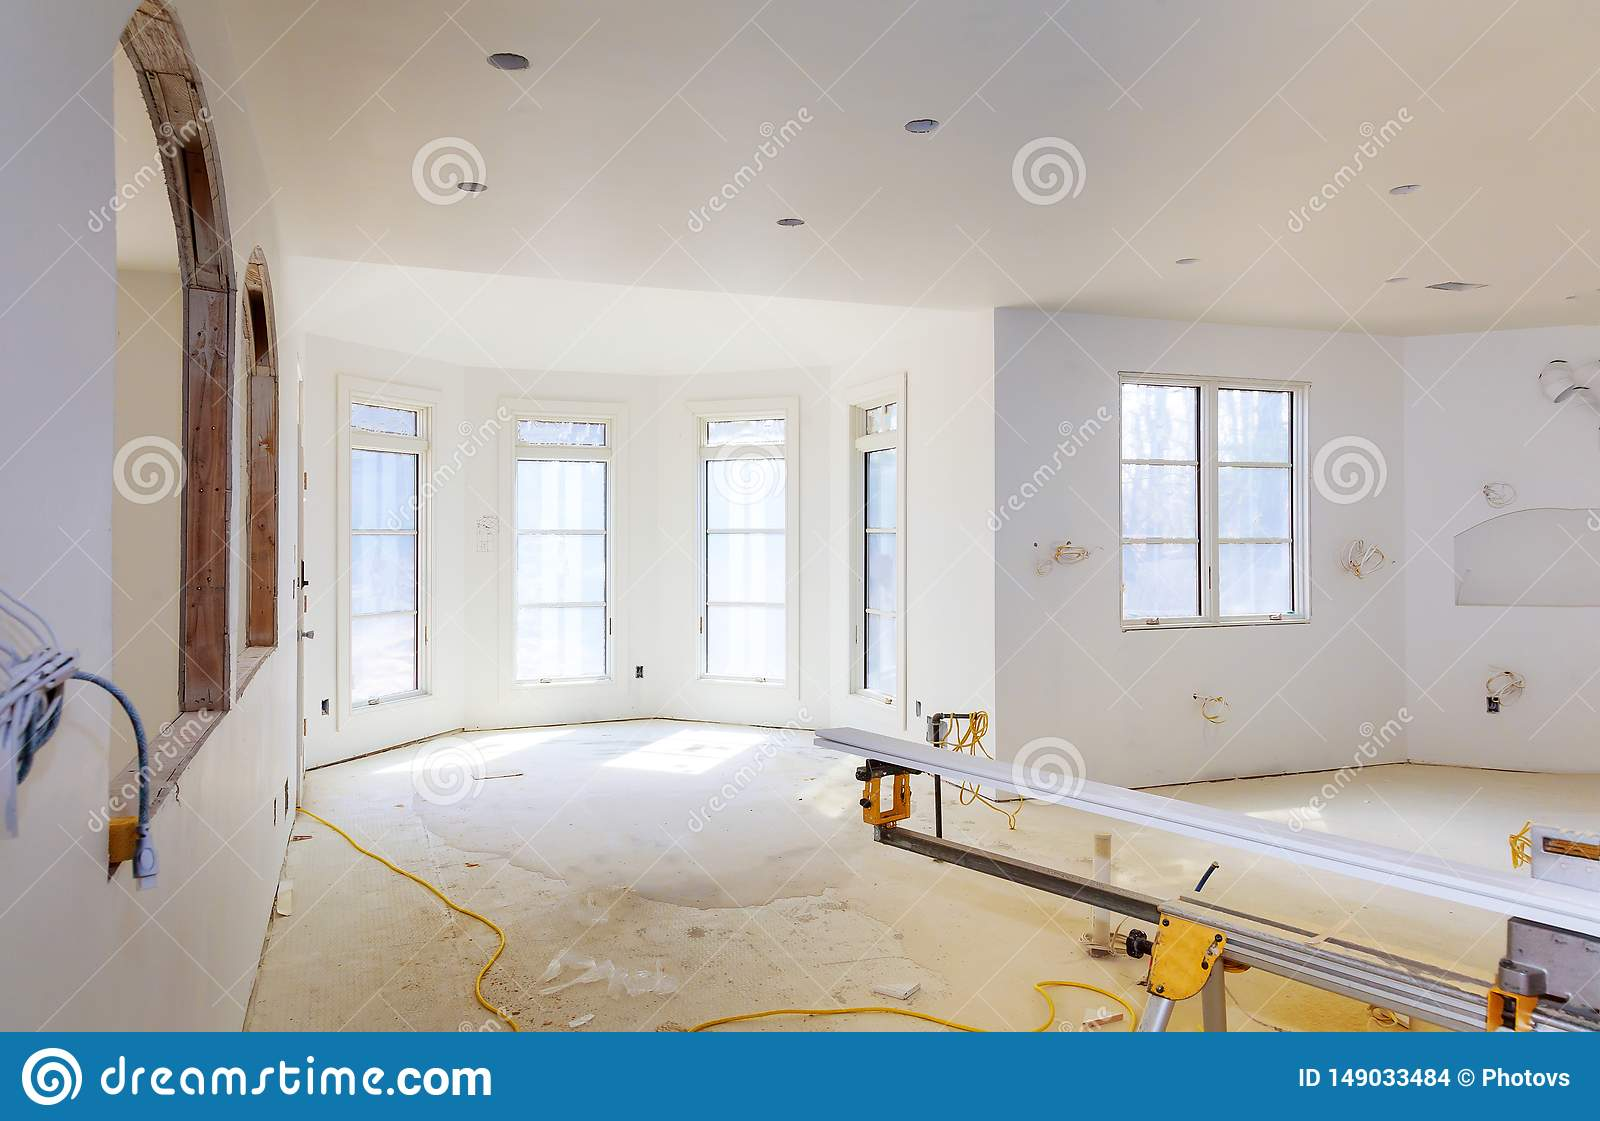 Under Construction, Remodeling And Renovation From Room Stock ...